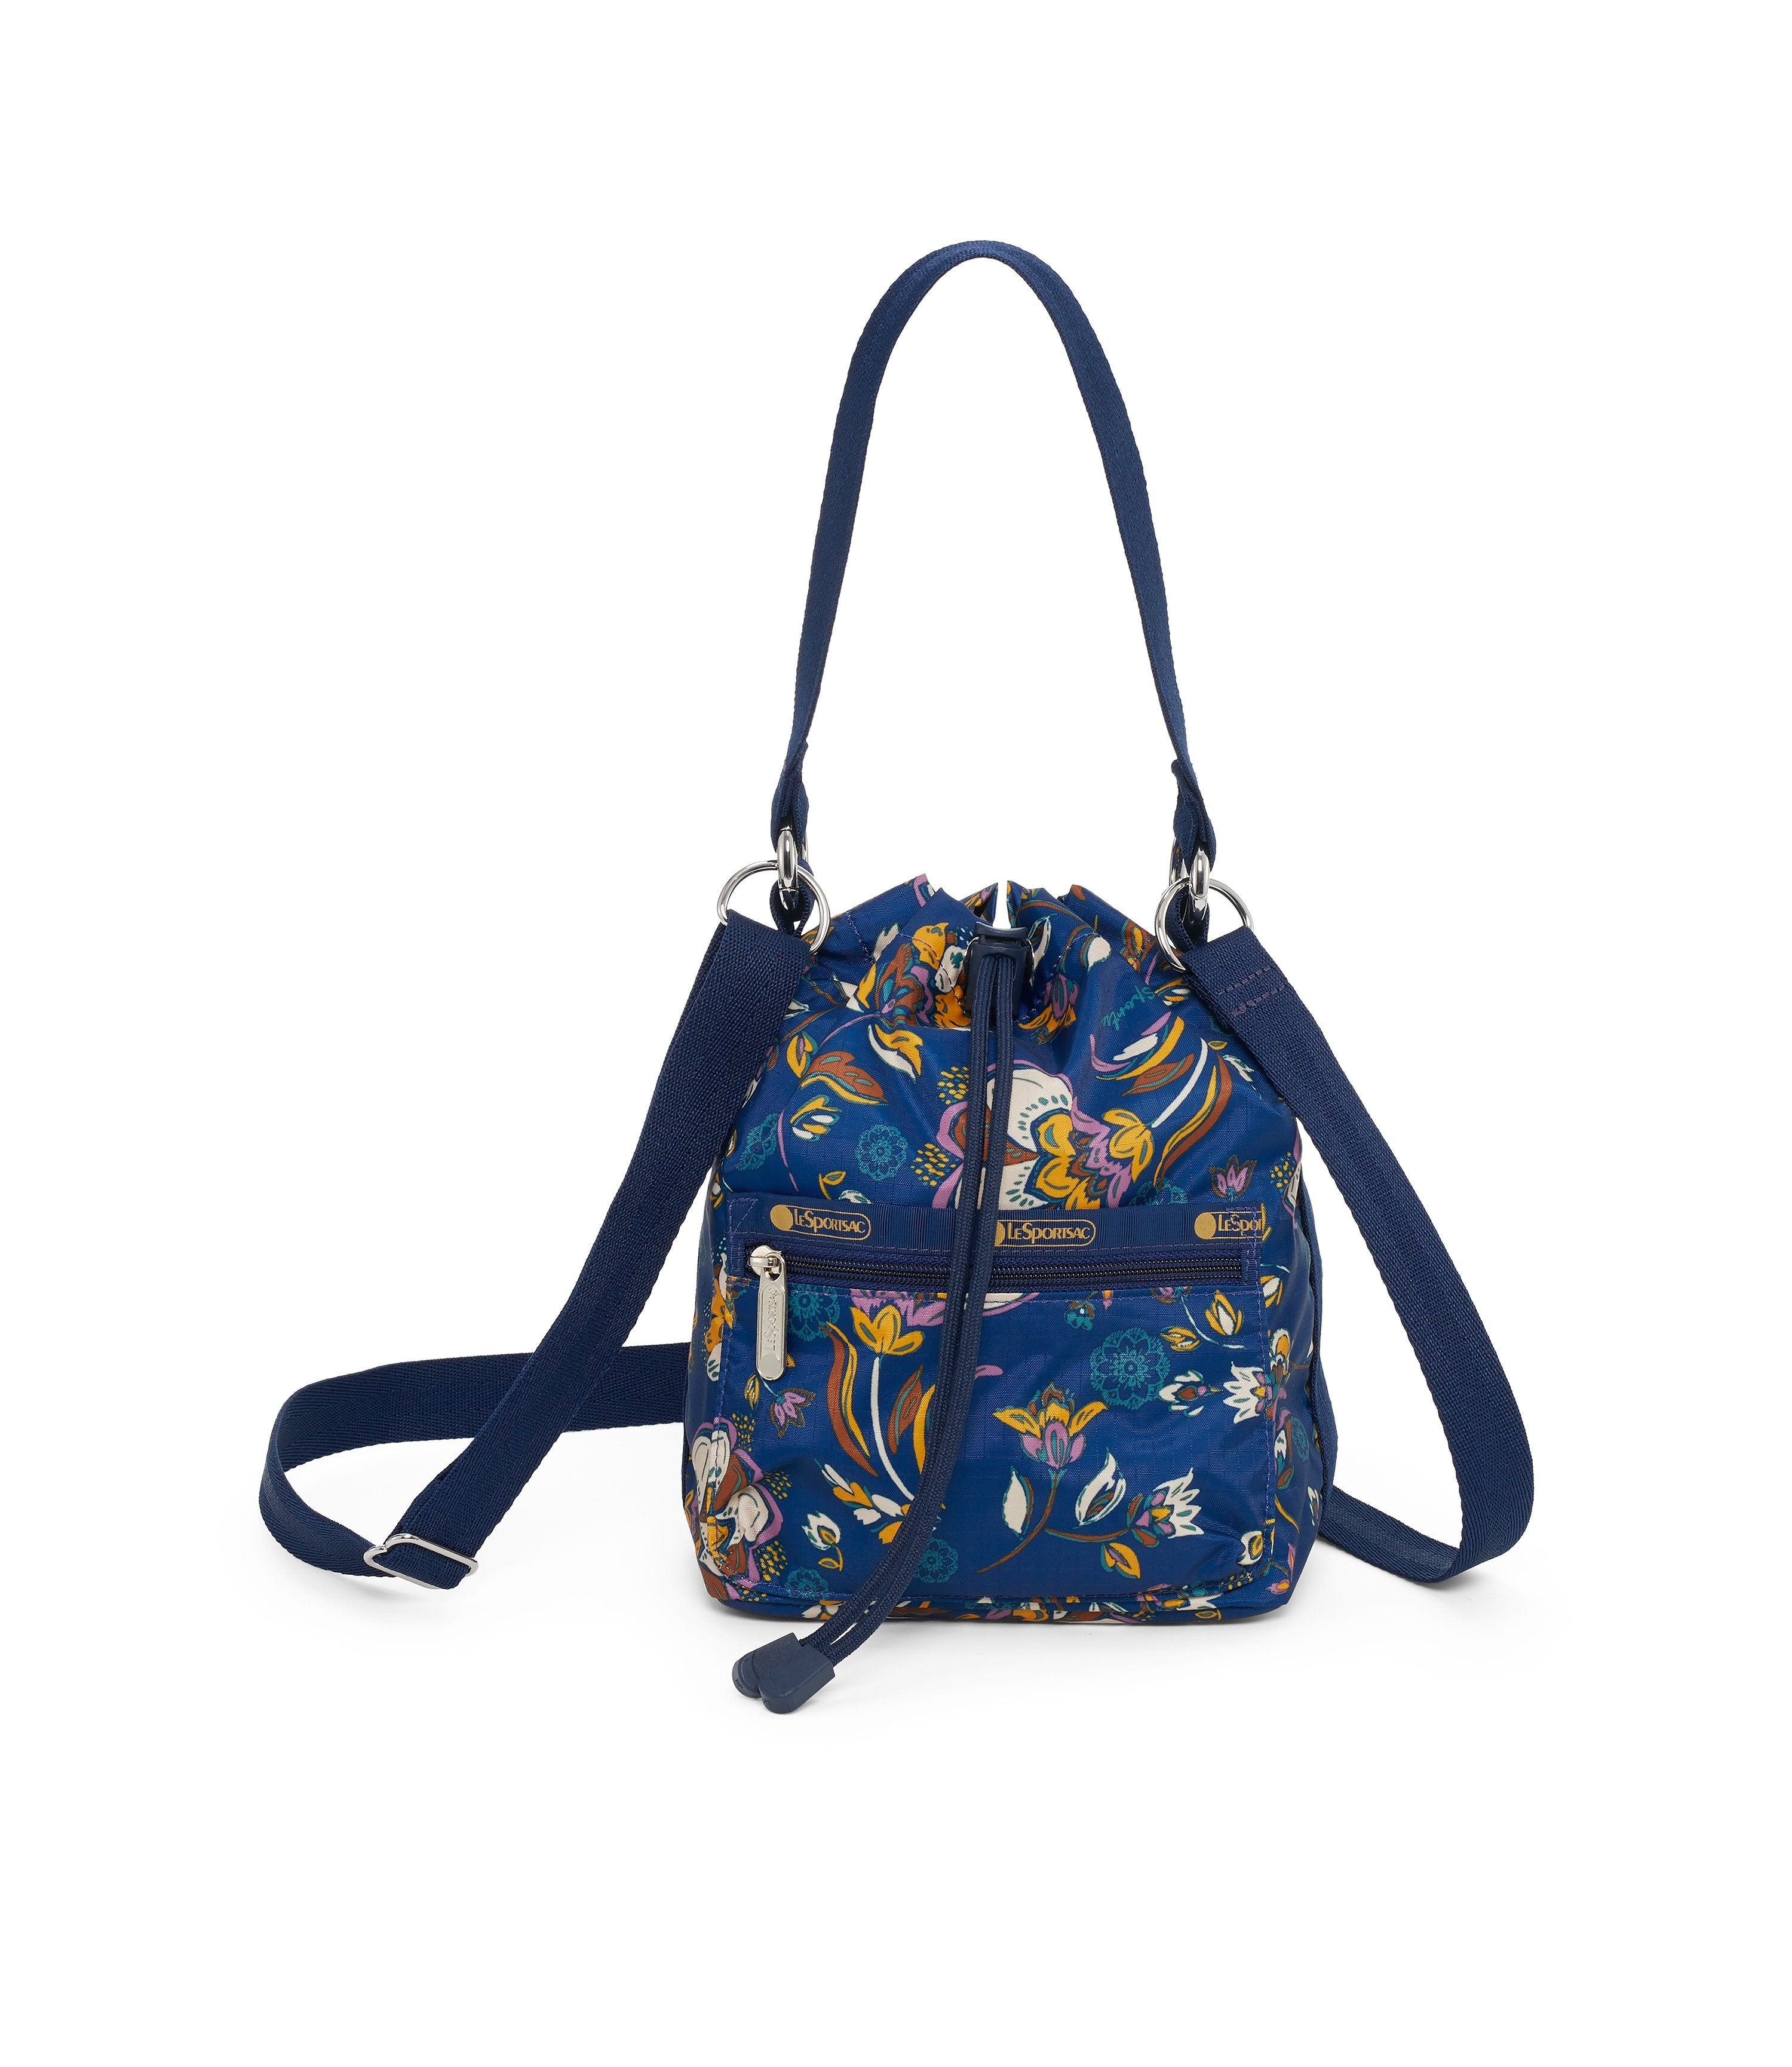 Aria Crossbody, Handbags and Crossbody Bags, LeSportsac, Zen Garden print